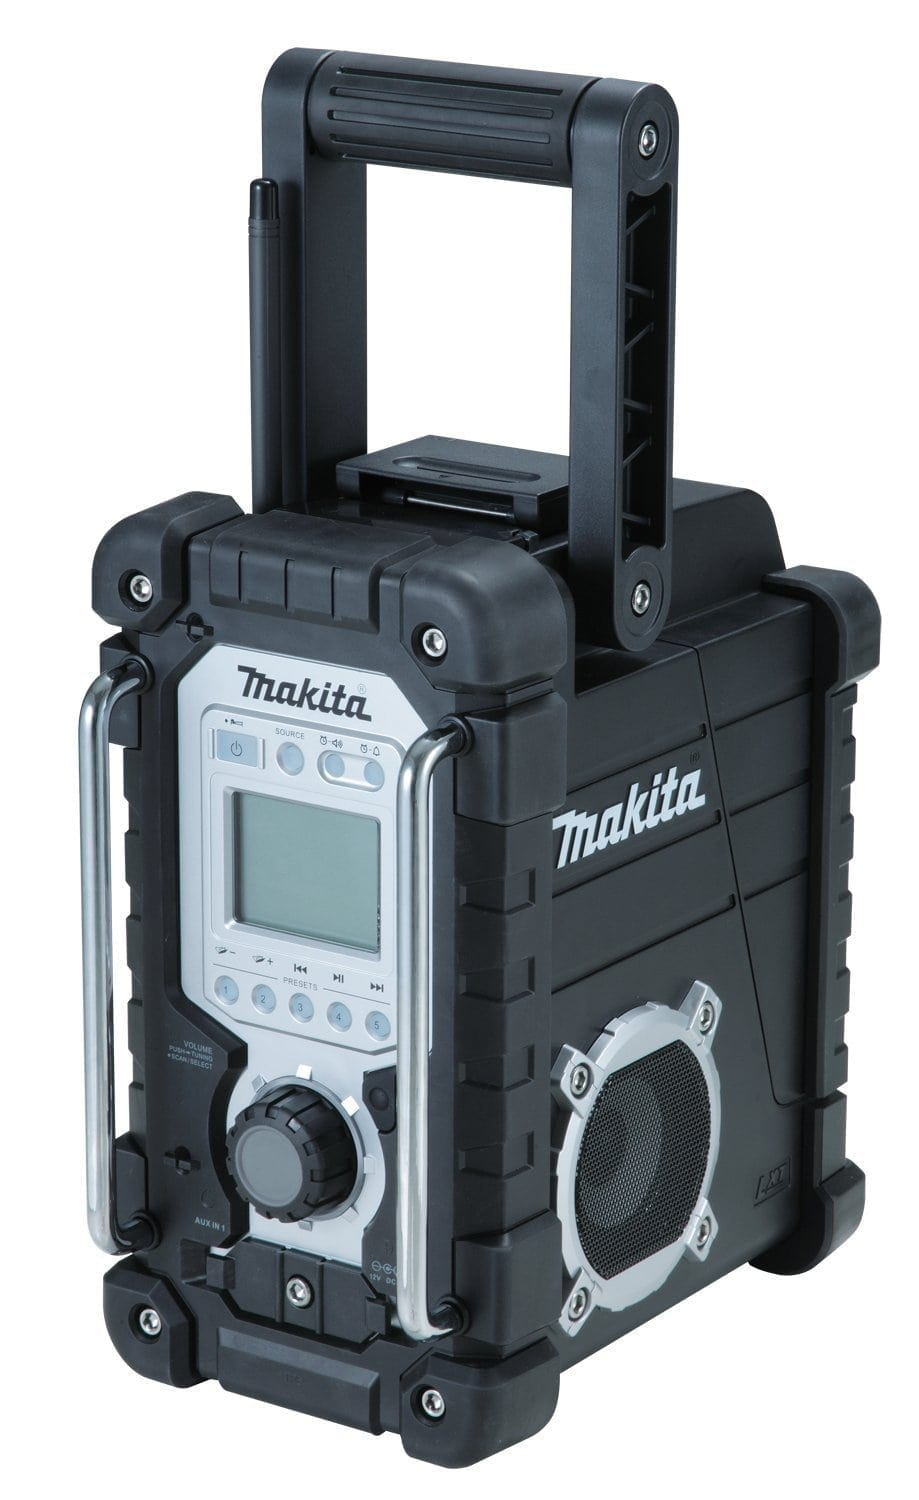 makita xrm04b 18v lxt li ion cordless am fm jobsite radio. Black Bedroom Furniture Sets. Home Design Ideas